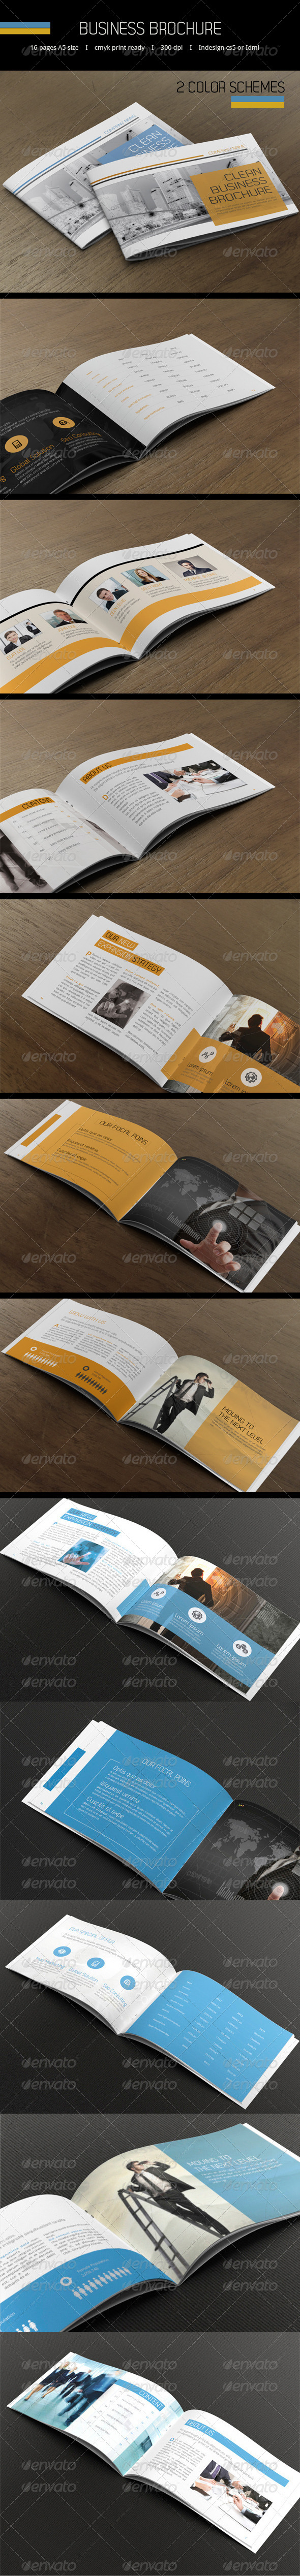 Business Brochure A5 - Catalogs Brochures